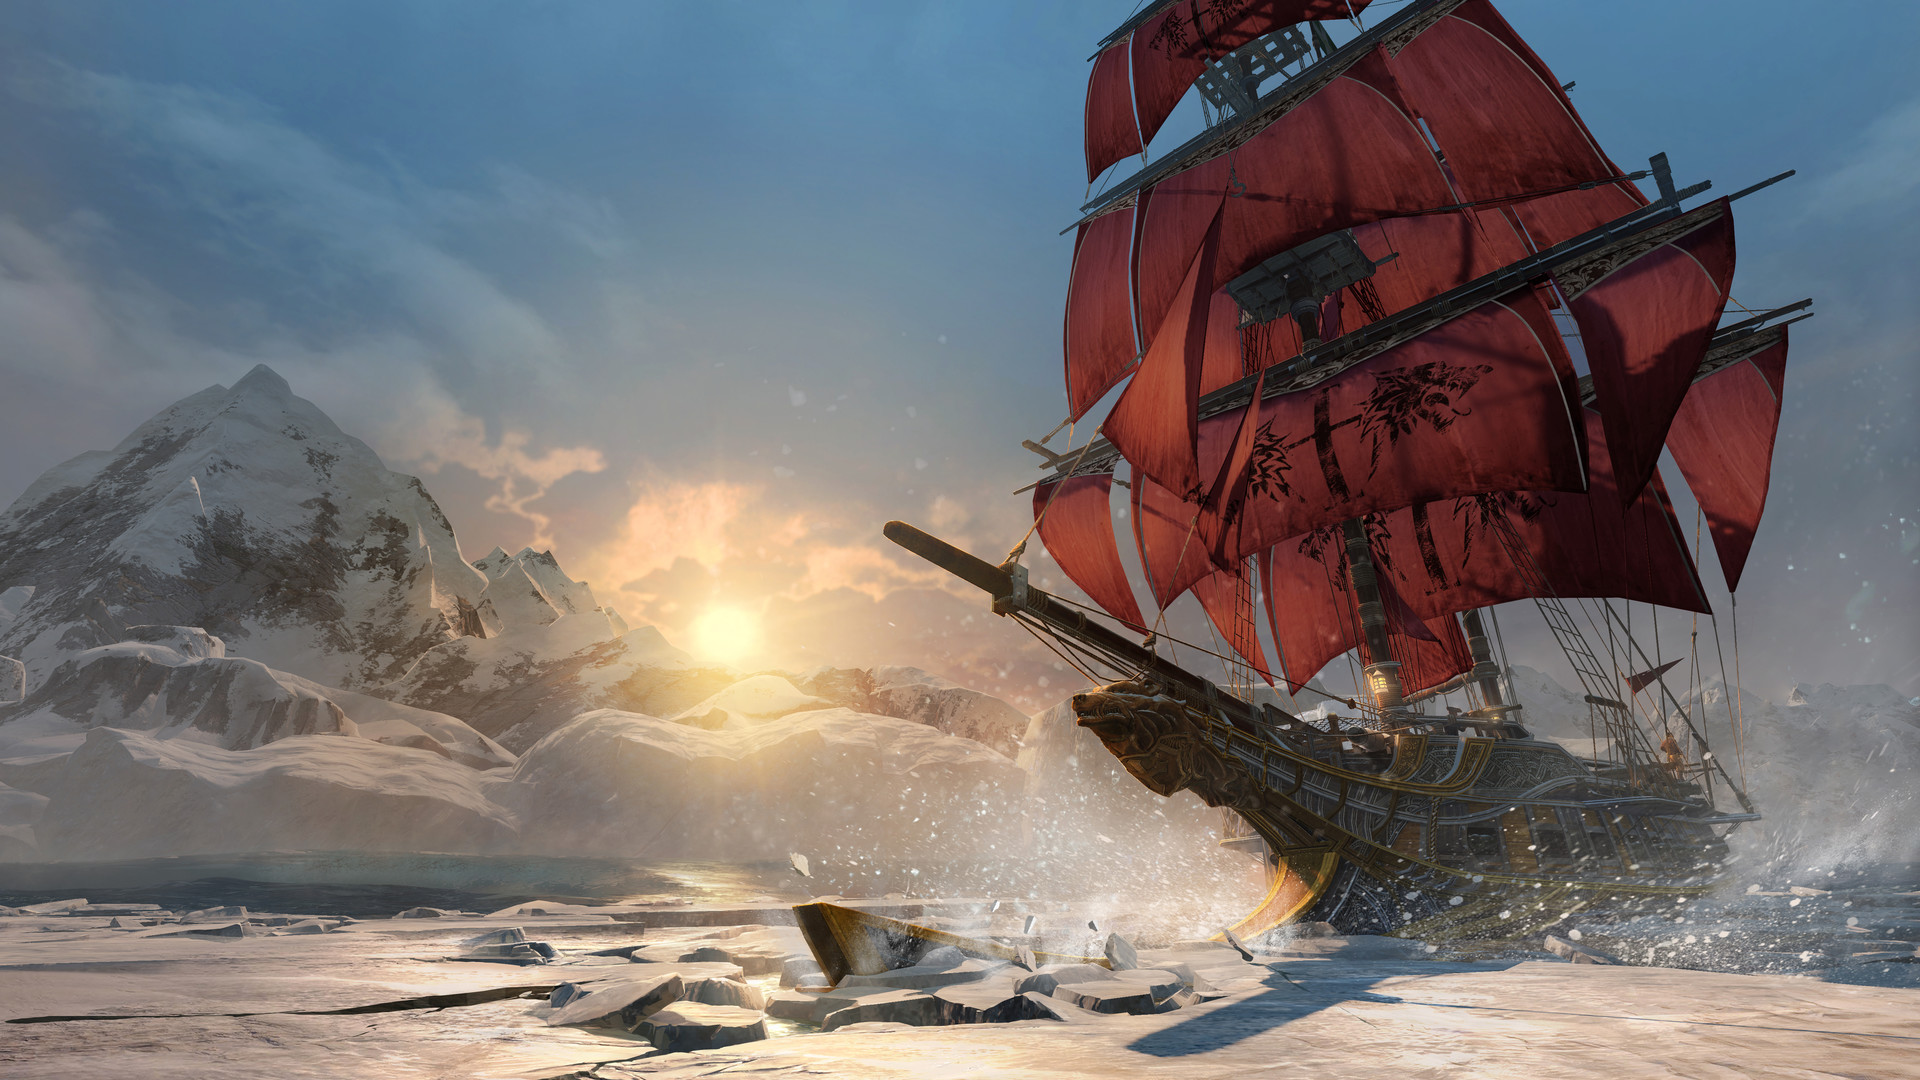 download assassin's creed rogue for pc playstation 4 3 ps4 ps3 xbox one 360 iso cd key steam origin free 2017 copiapop diskokosmiko